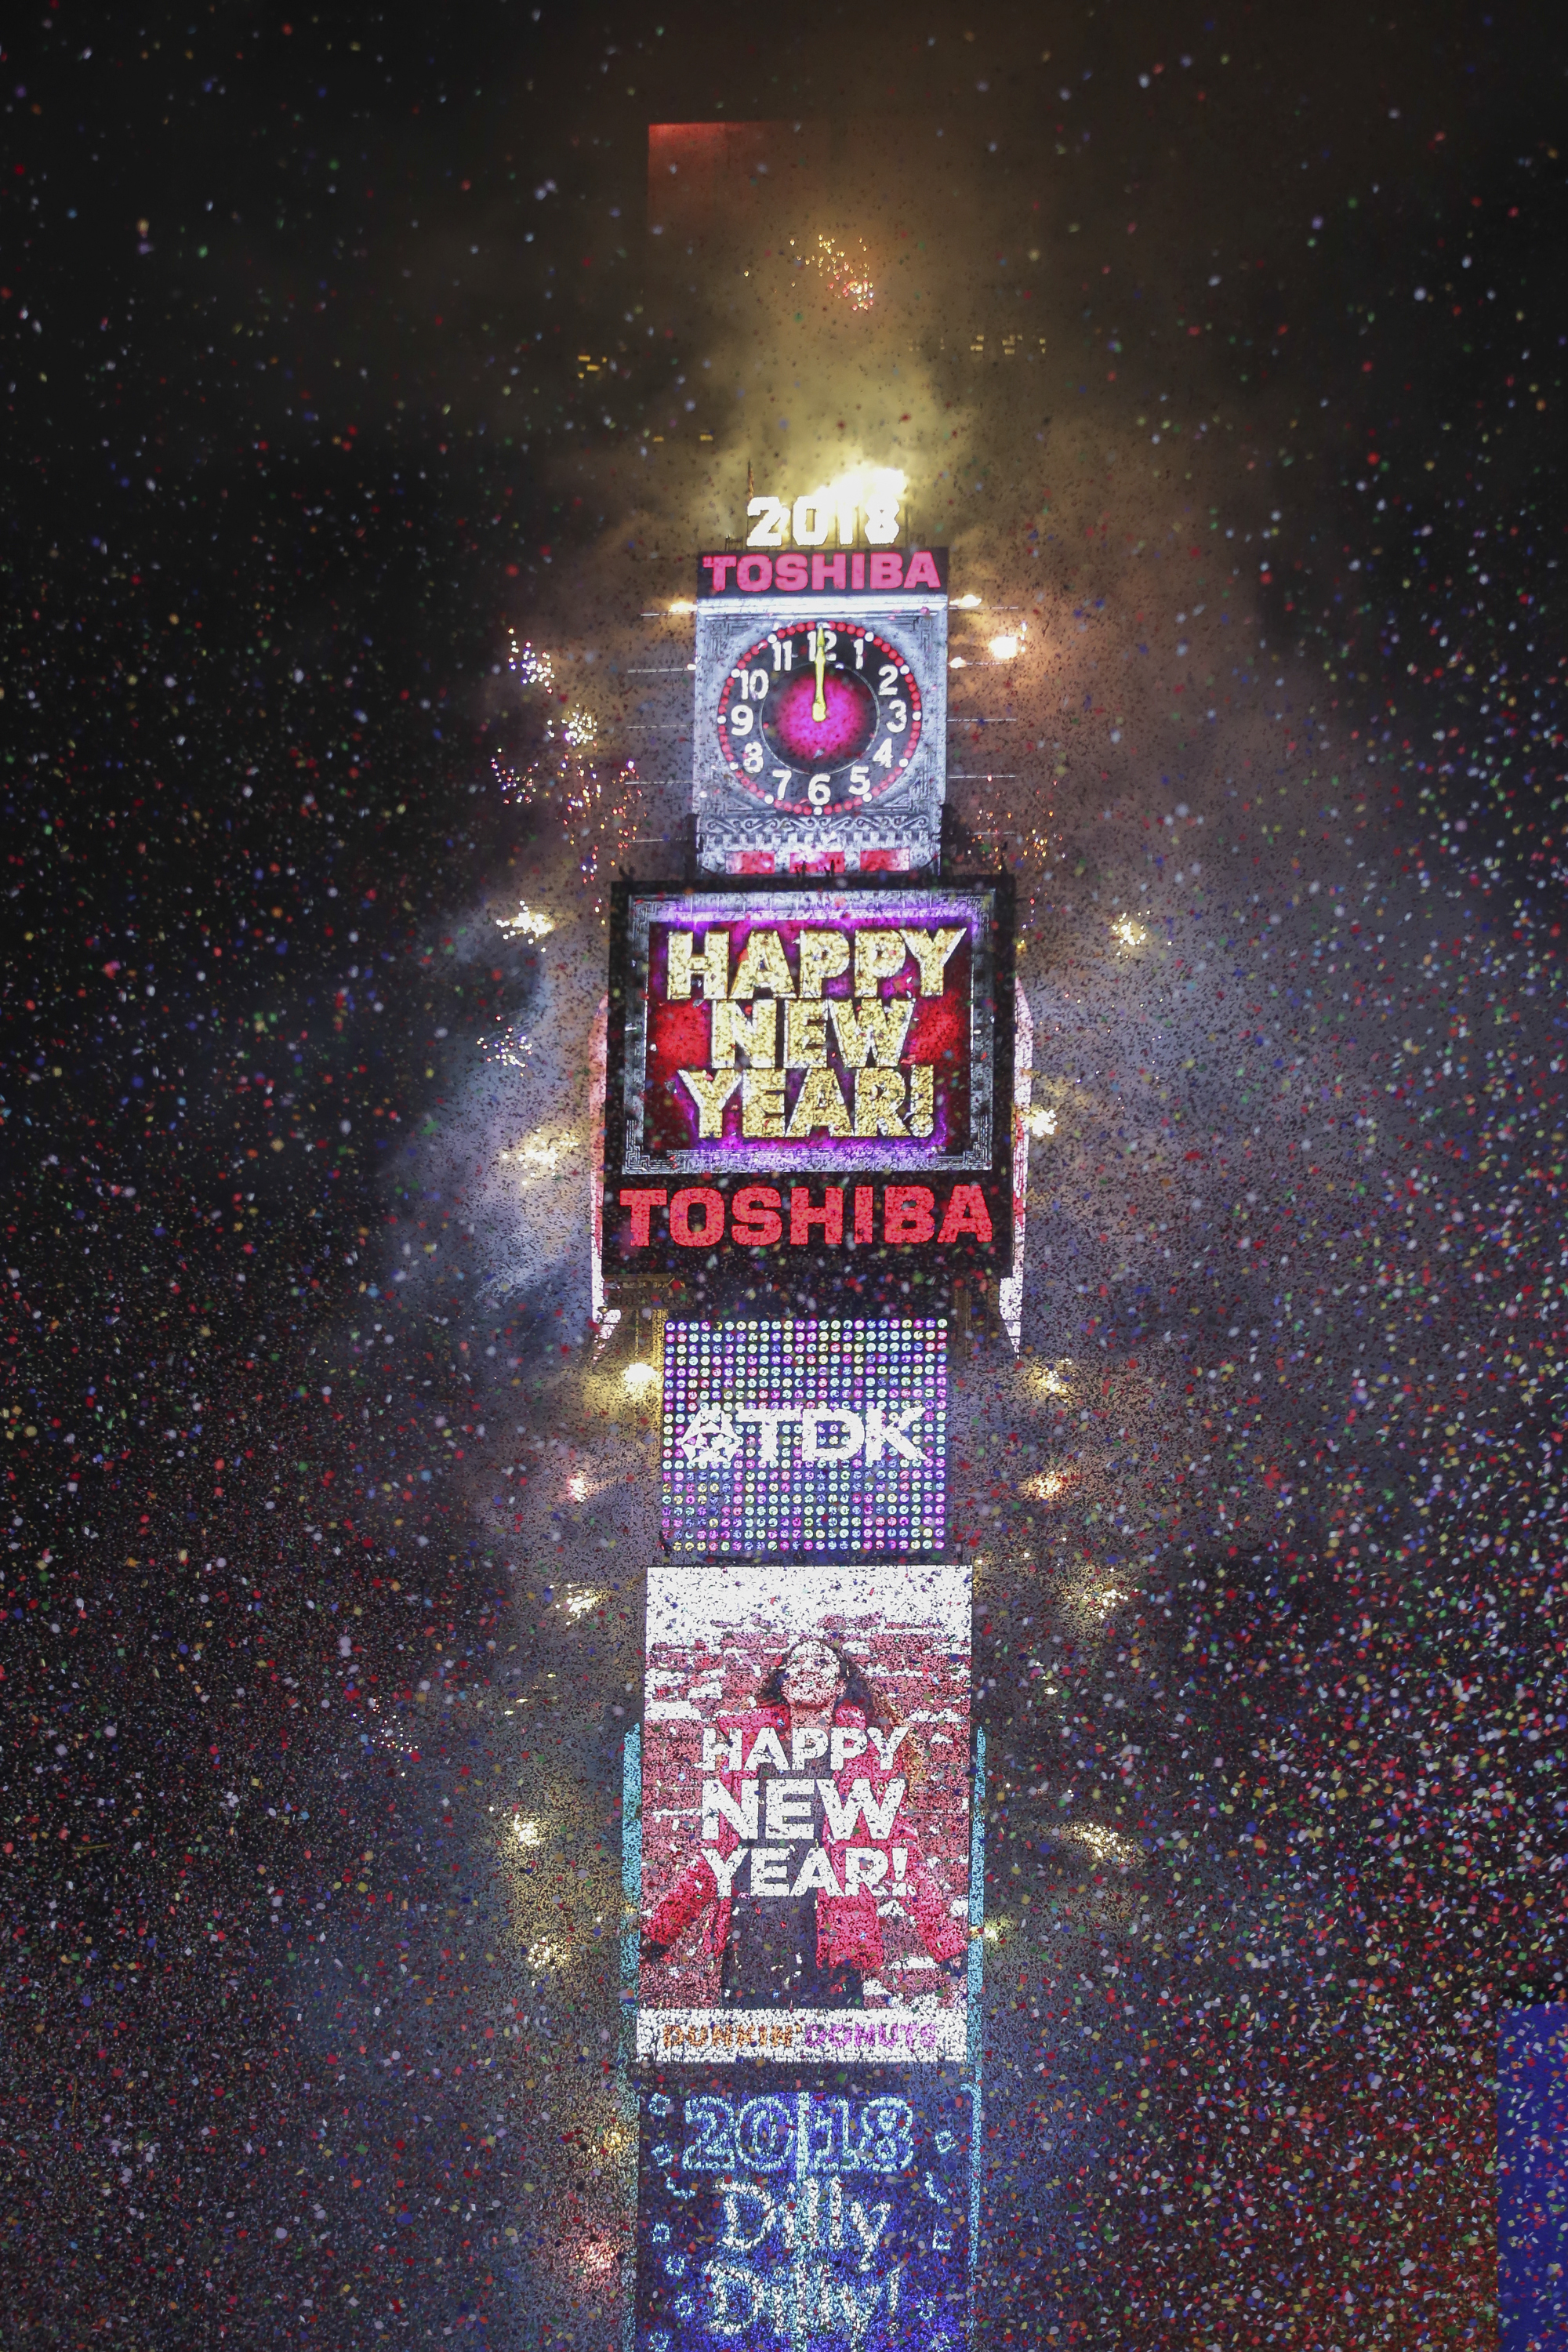 "<div class=""meta image-caption""><div class=""origin-logo origin-image ap""><span>AP</span></div><span class=""caption-text"">The ball drops during the New Year's Eve celebration in Times Square on Sunday, Dec. 31, 2017, in New York. (Photo by Brent N. Clarke/Invision/AP) (Brent N. Clarke/Invision/AP)</span></div>"